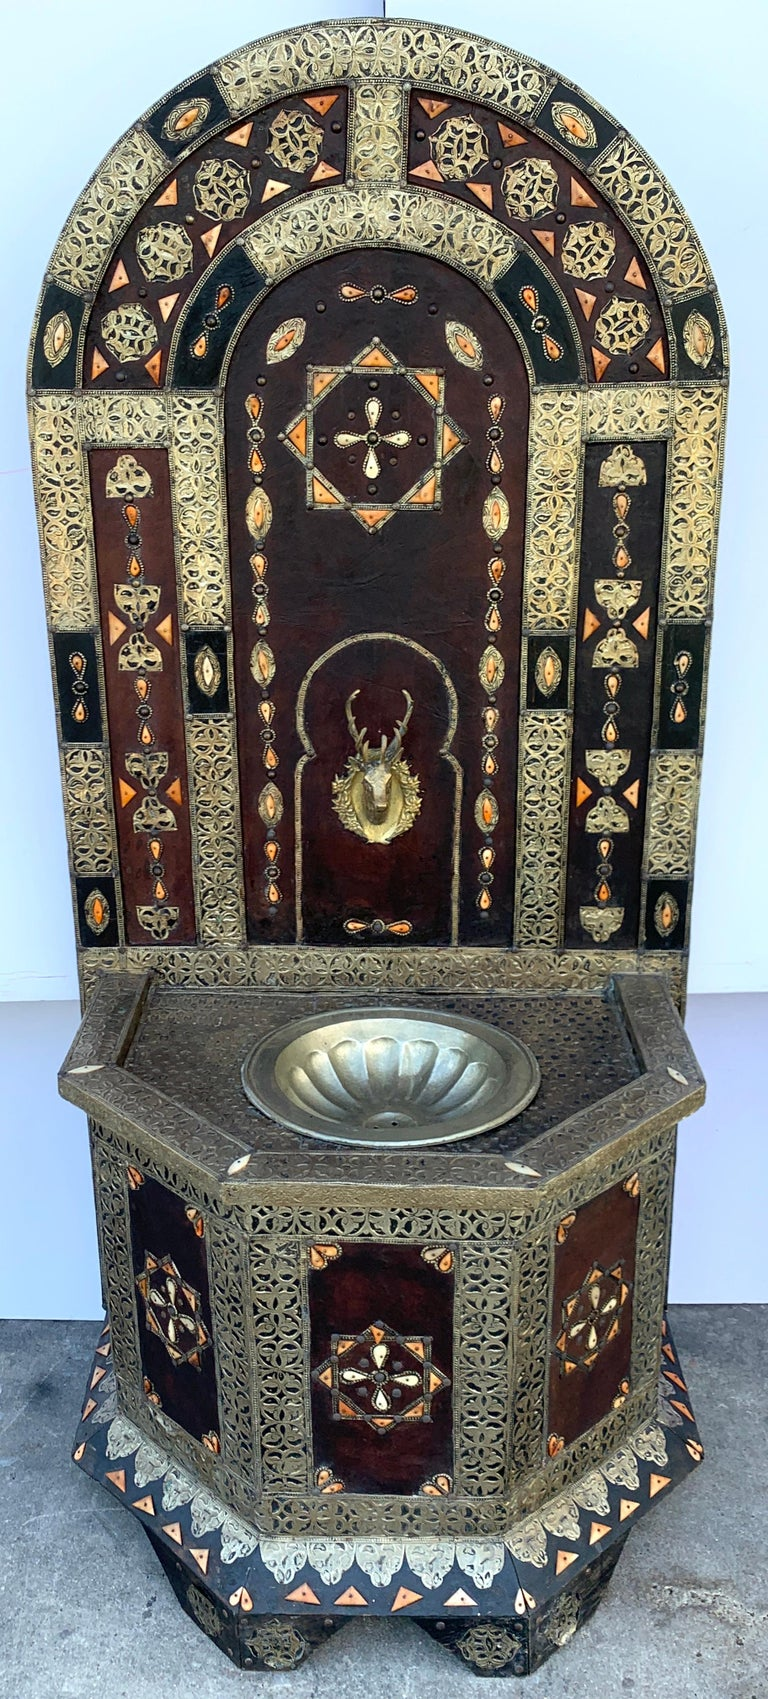 Exotic vintage Moroccan brass, bone, and silvered fountain, standing 6 feet tall the demilune backsplash profusely inlaid and mounted with various decorative elements, with a central brass stag fountain spilling into a 15-Inch diameter ribbed bowl